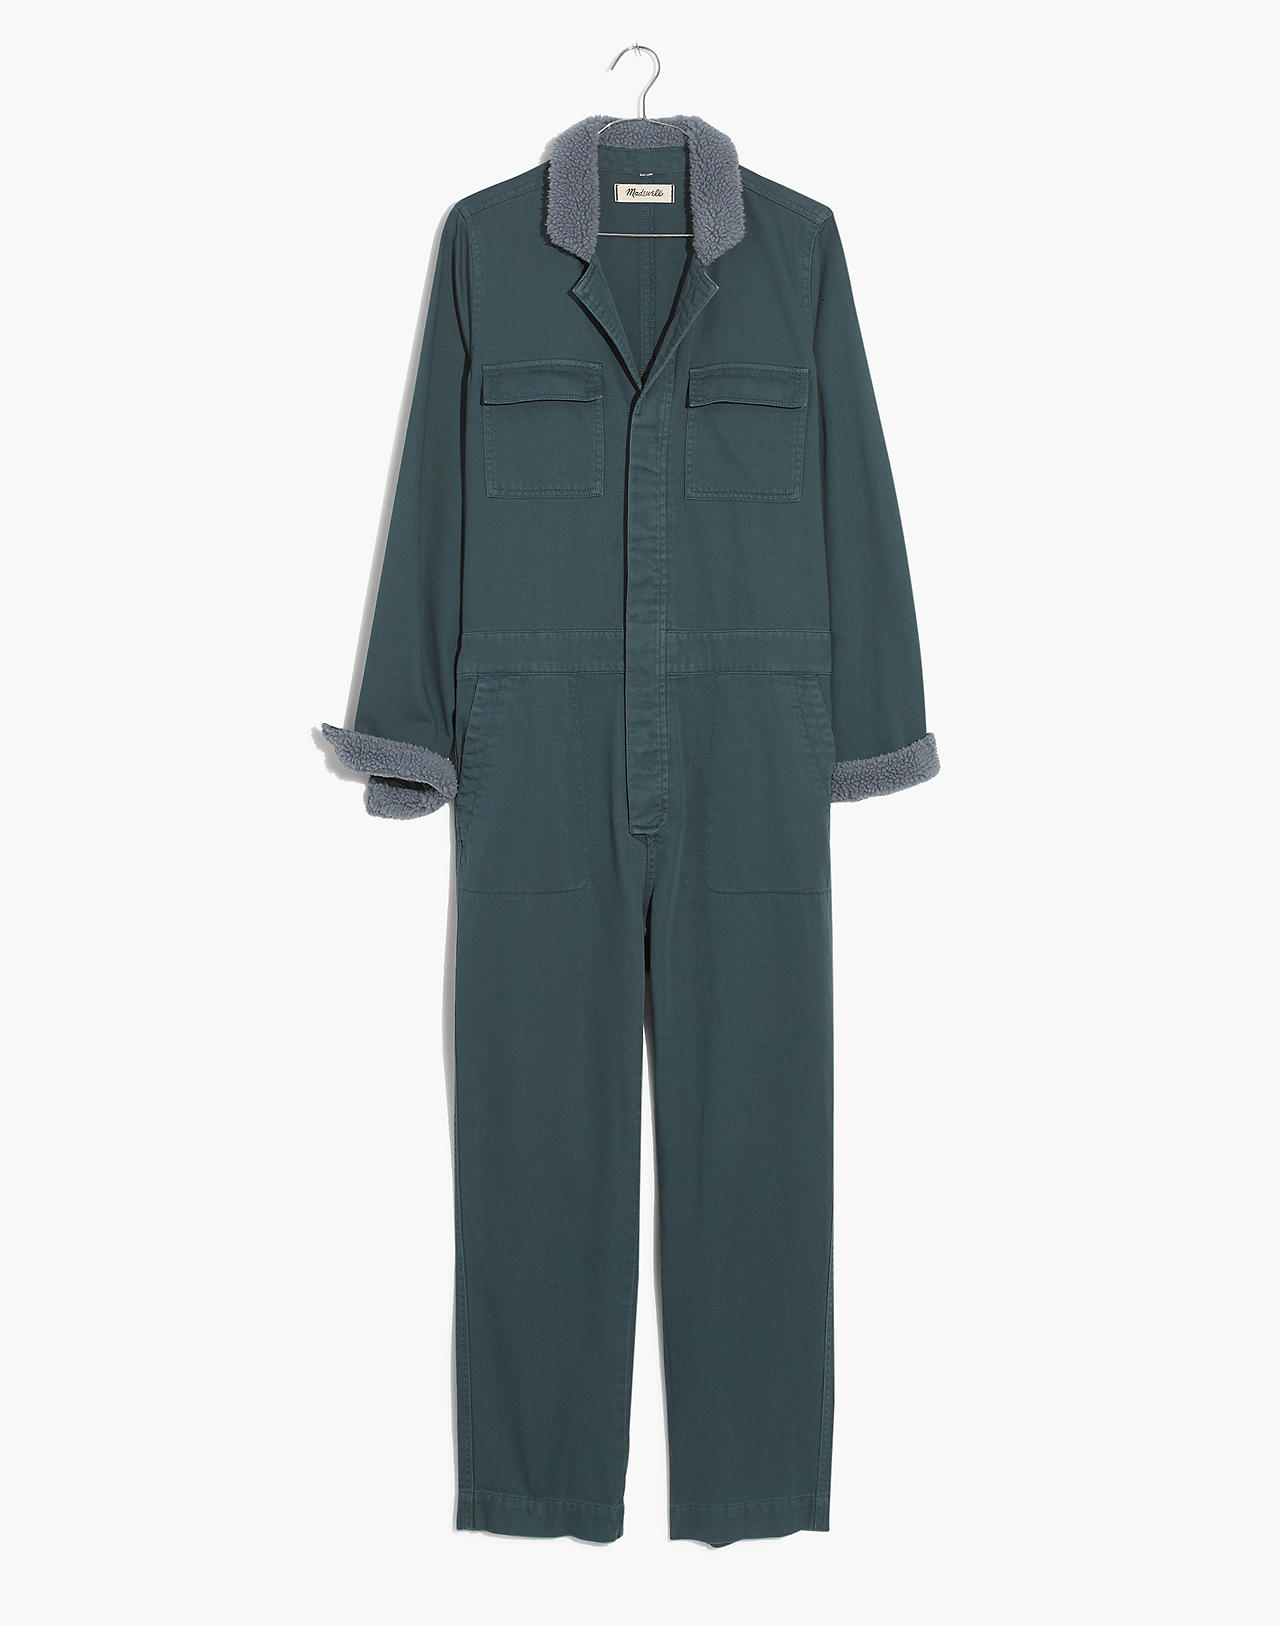 fe1a47e6c930 Sherpa Coverall Jumpsuit in dusty moss image 4